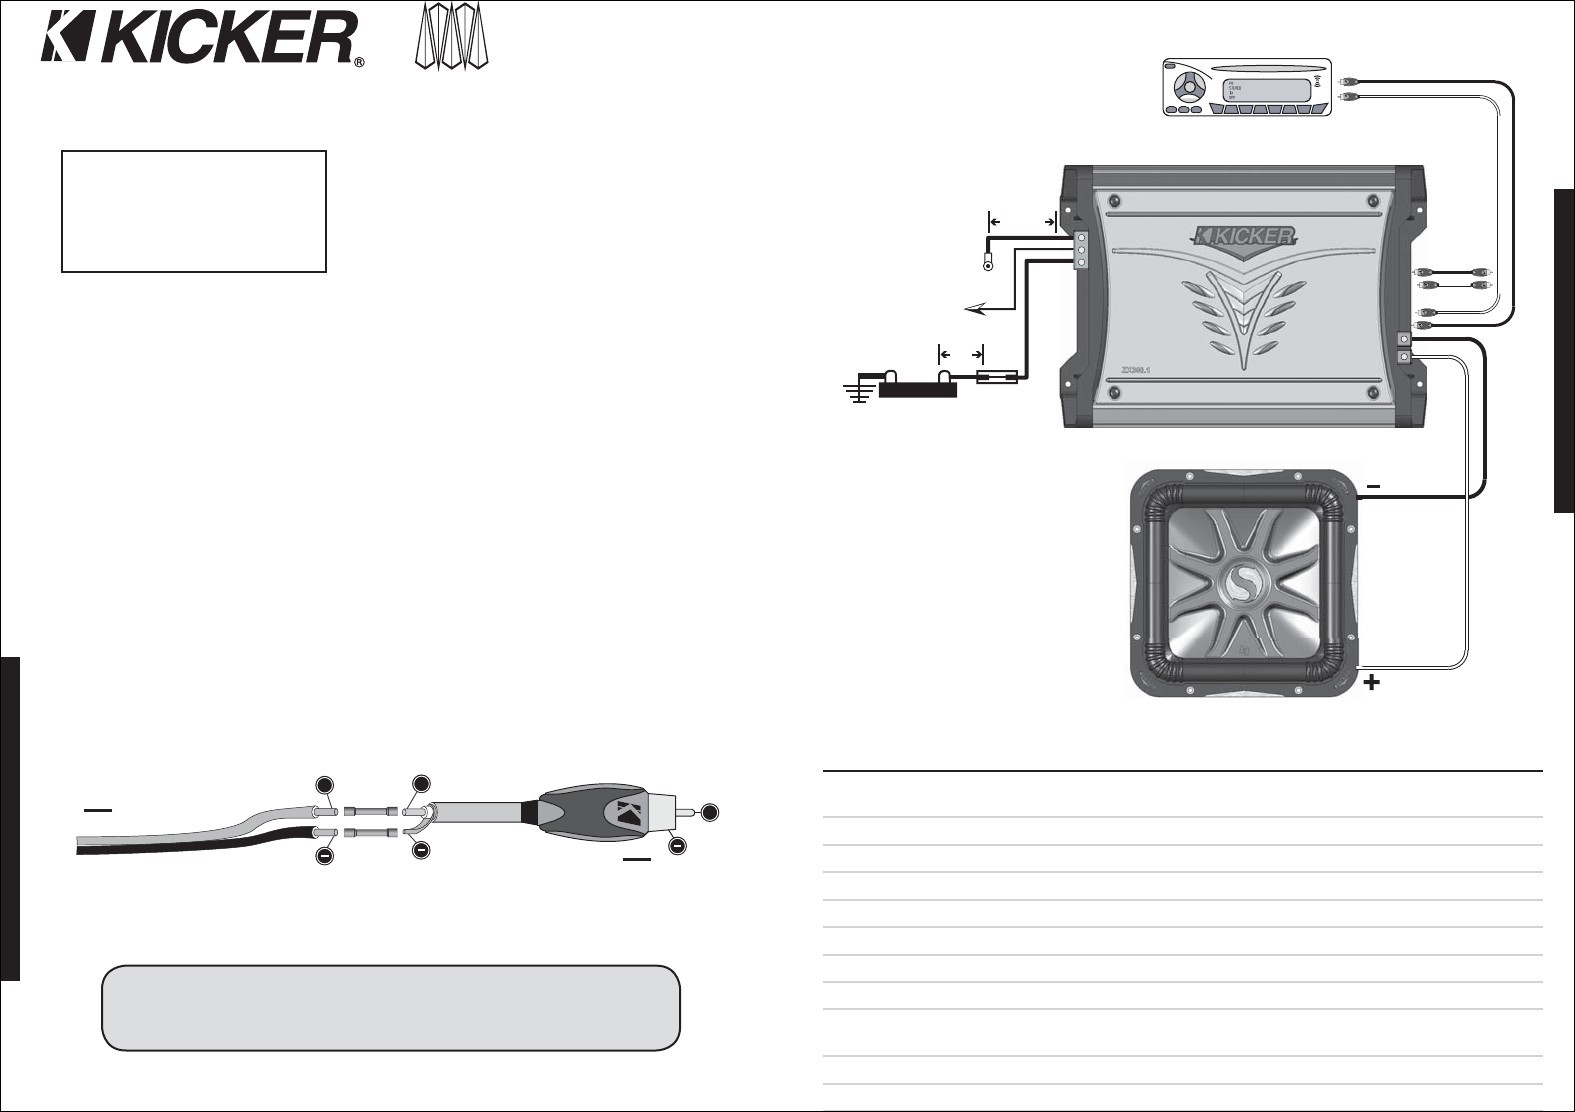 Speaker Wiring Diagram Additionally Kicker L7 Wiring Diagram As Well